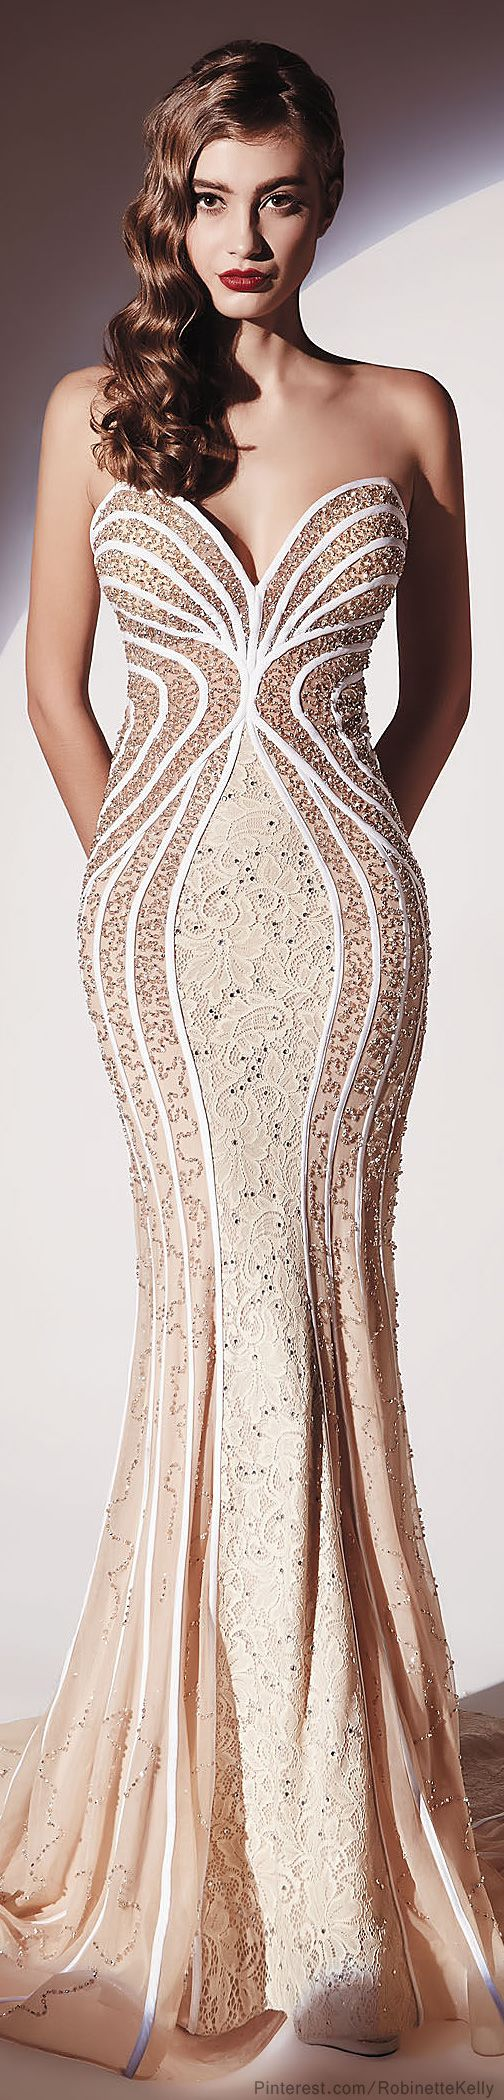 Dany tabet couture ss beautiful fashion pinterest